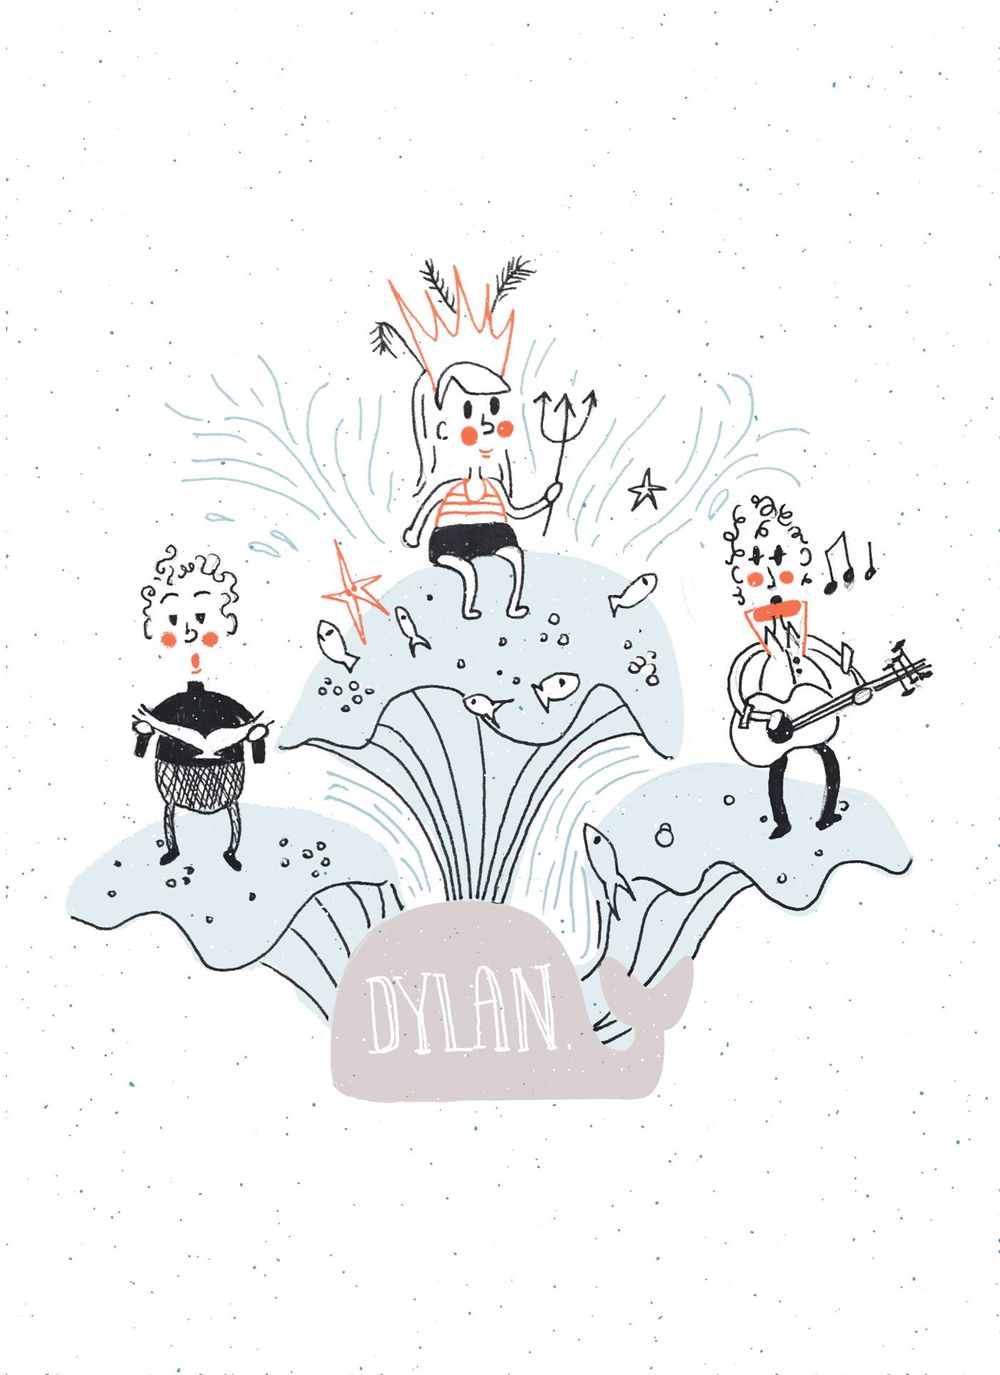 Dylan: God of the Sea! - image 3 - student project